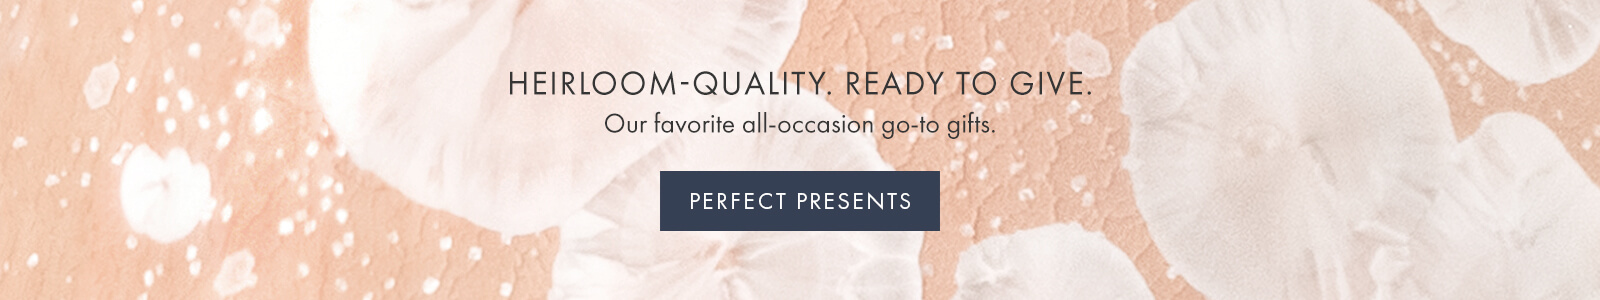 HEIRLOOM-QUALITY. READY TO GIVE. Our favorite all-occasion go-to gifts  — PERFECT PRESENTS